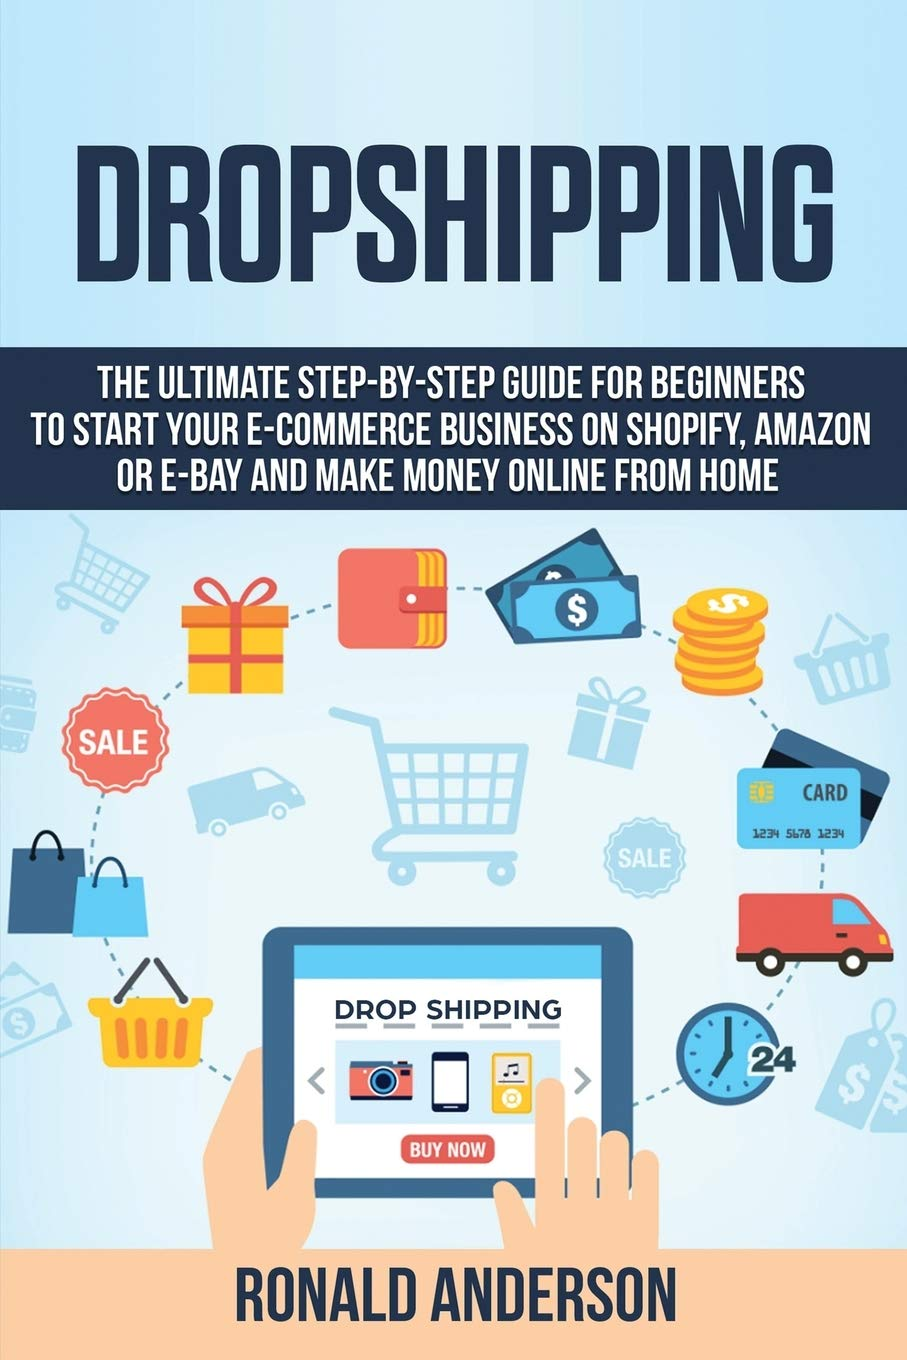 Dropshipping: The Ultimate Step-by-Step Guide for Beginners to Start your E-Commerce Business on Shopify, Amazon or E-Bay and Make Money Online From Home 3: Amazon.es: Anderson, Ronald: Libros en idiomas extranjeros